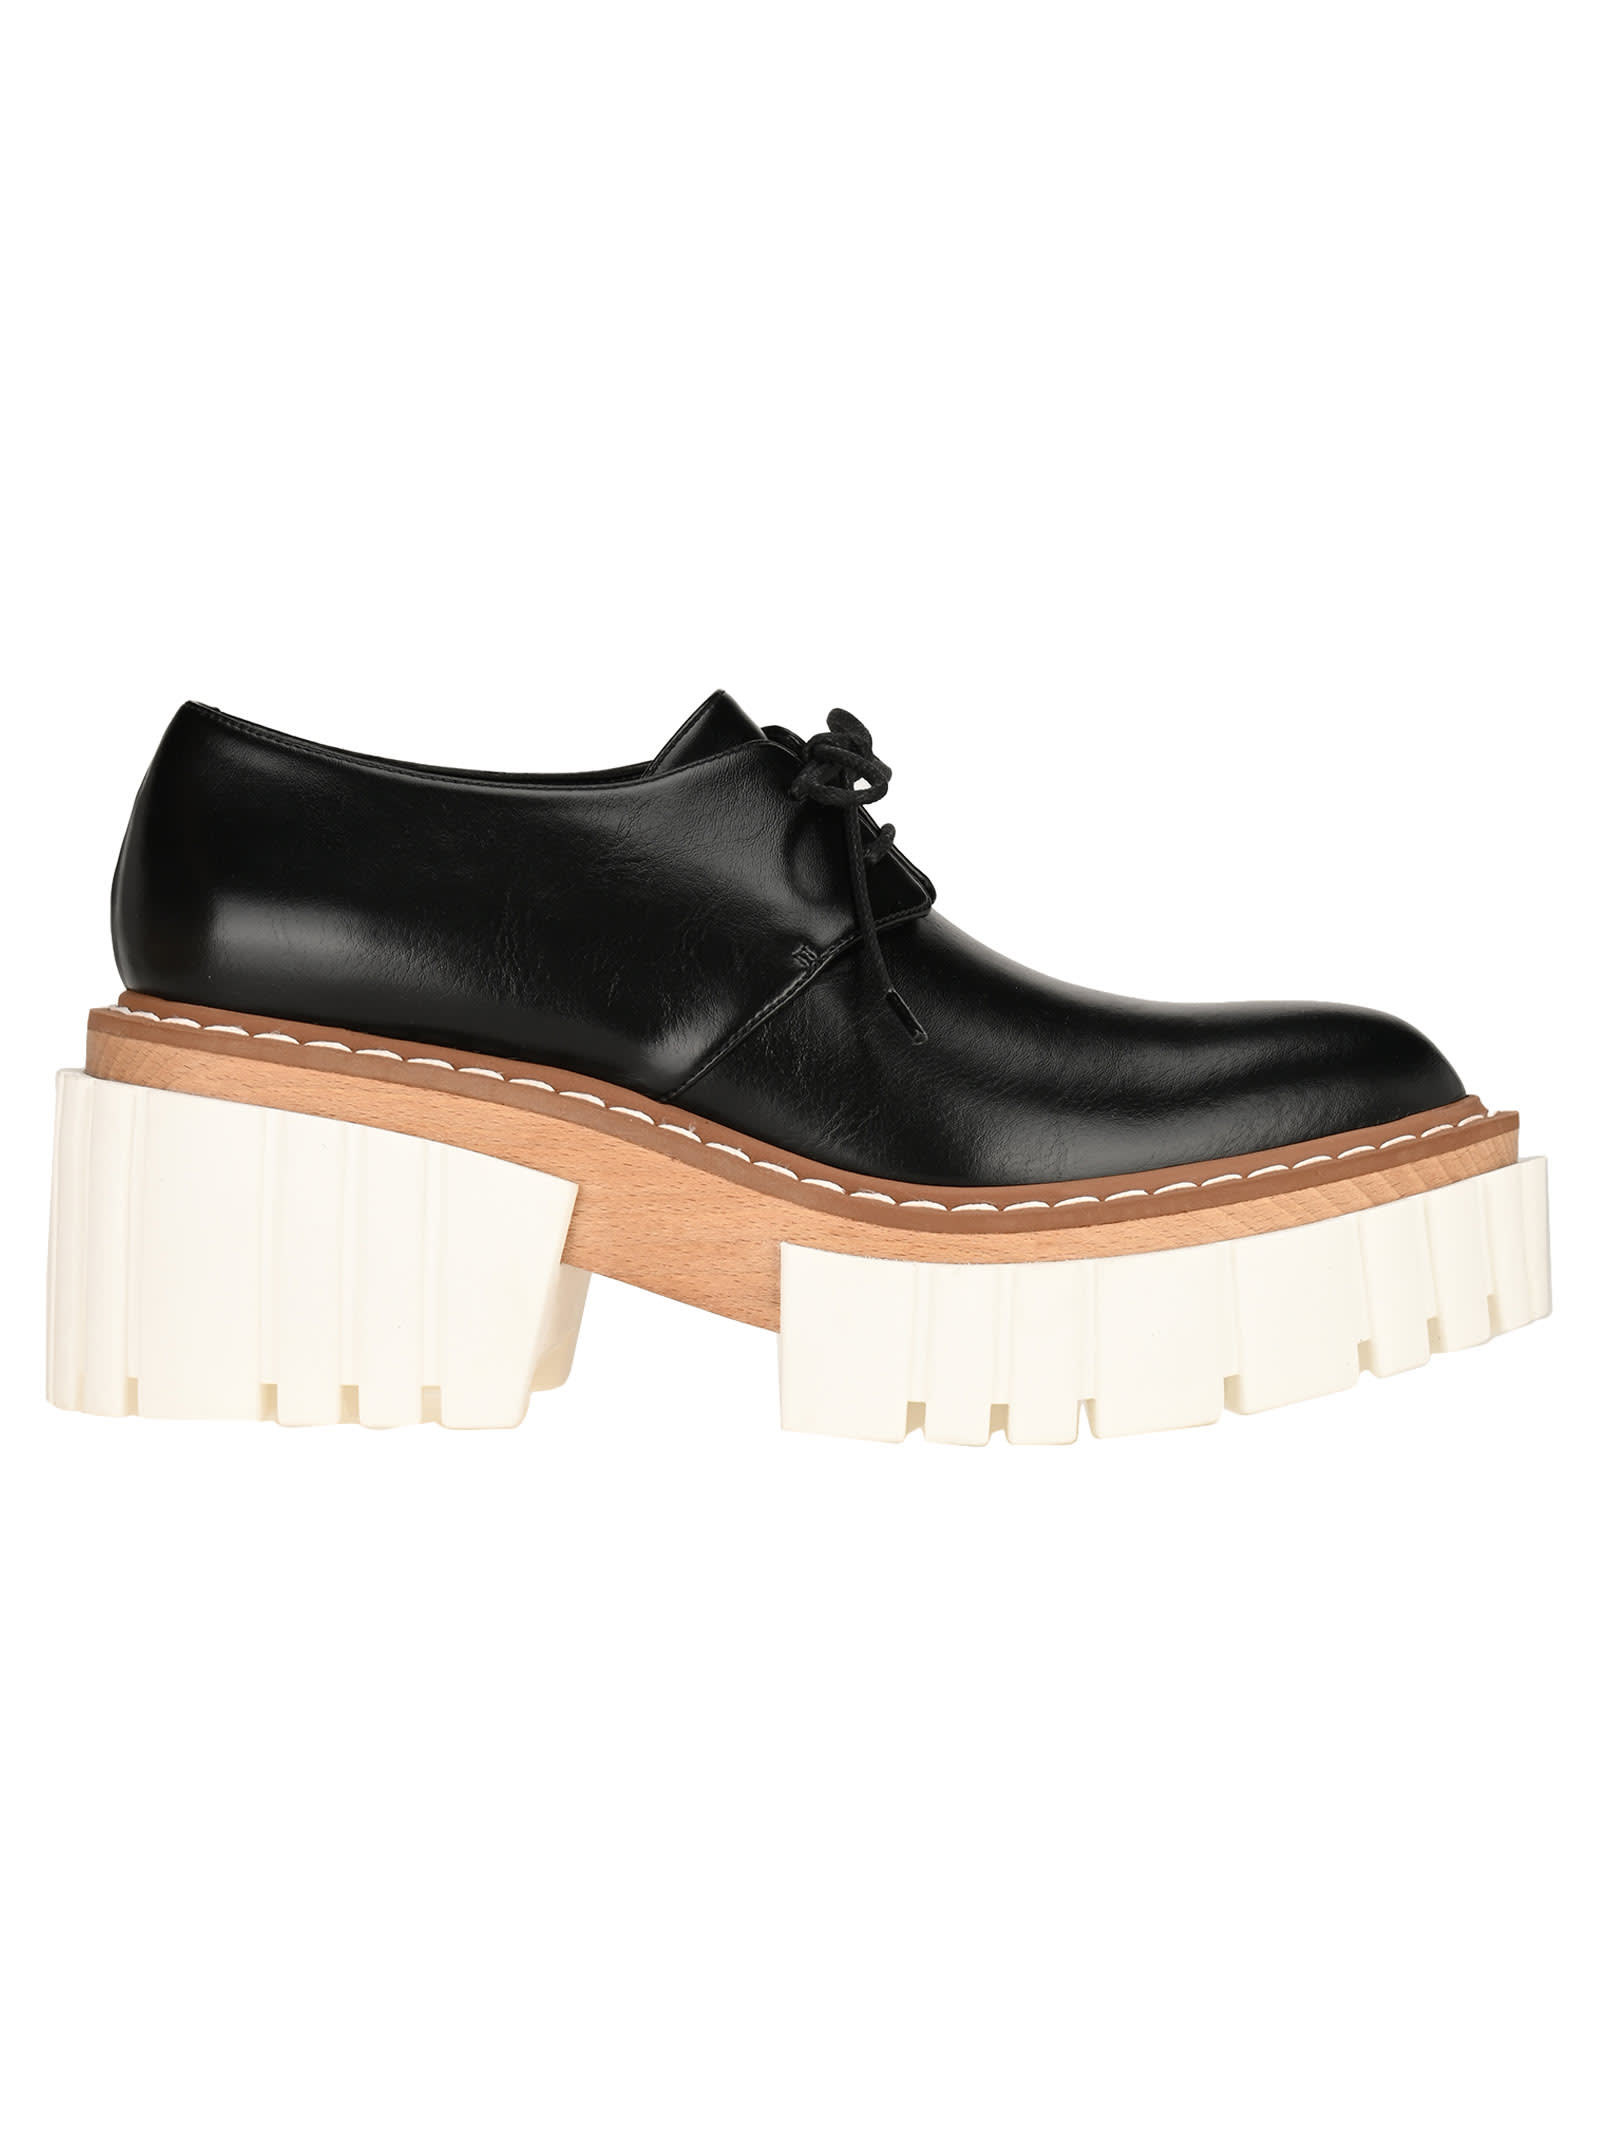 Stella Mccartney Leathers EMILIE LACED SHOES